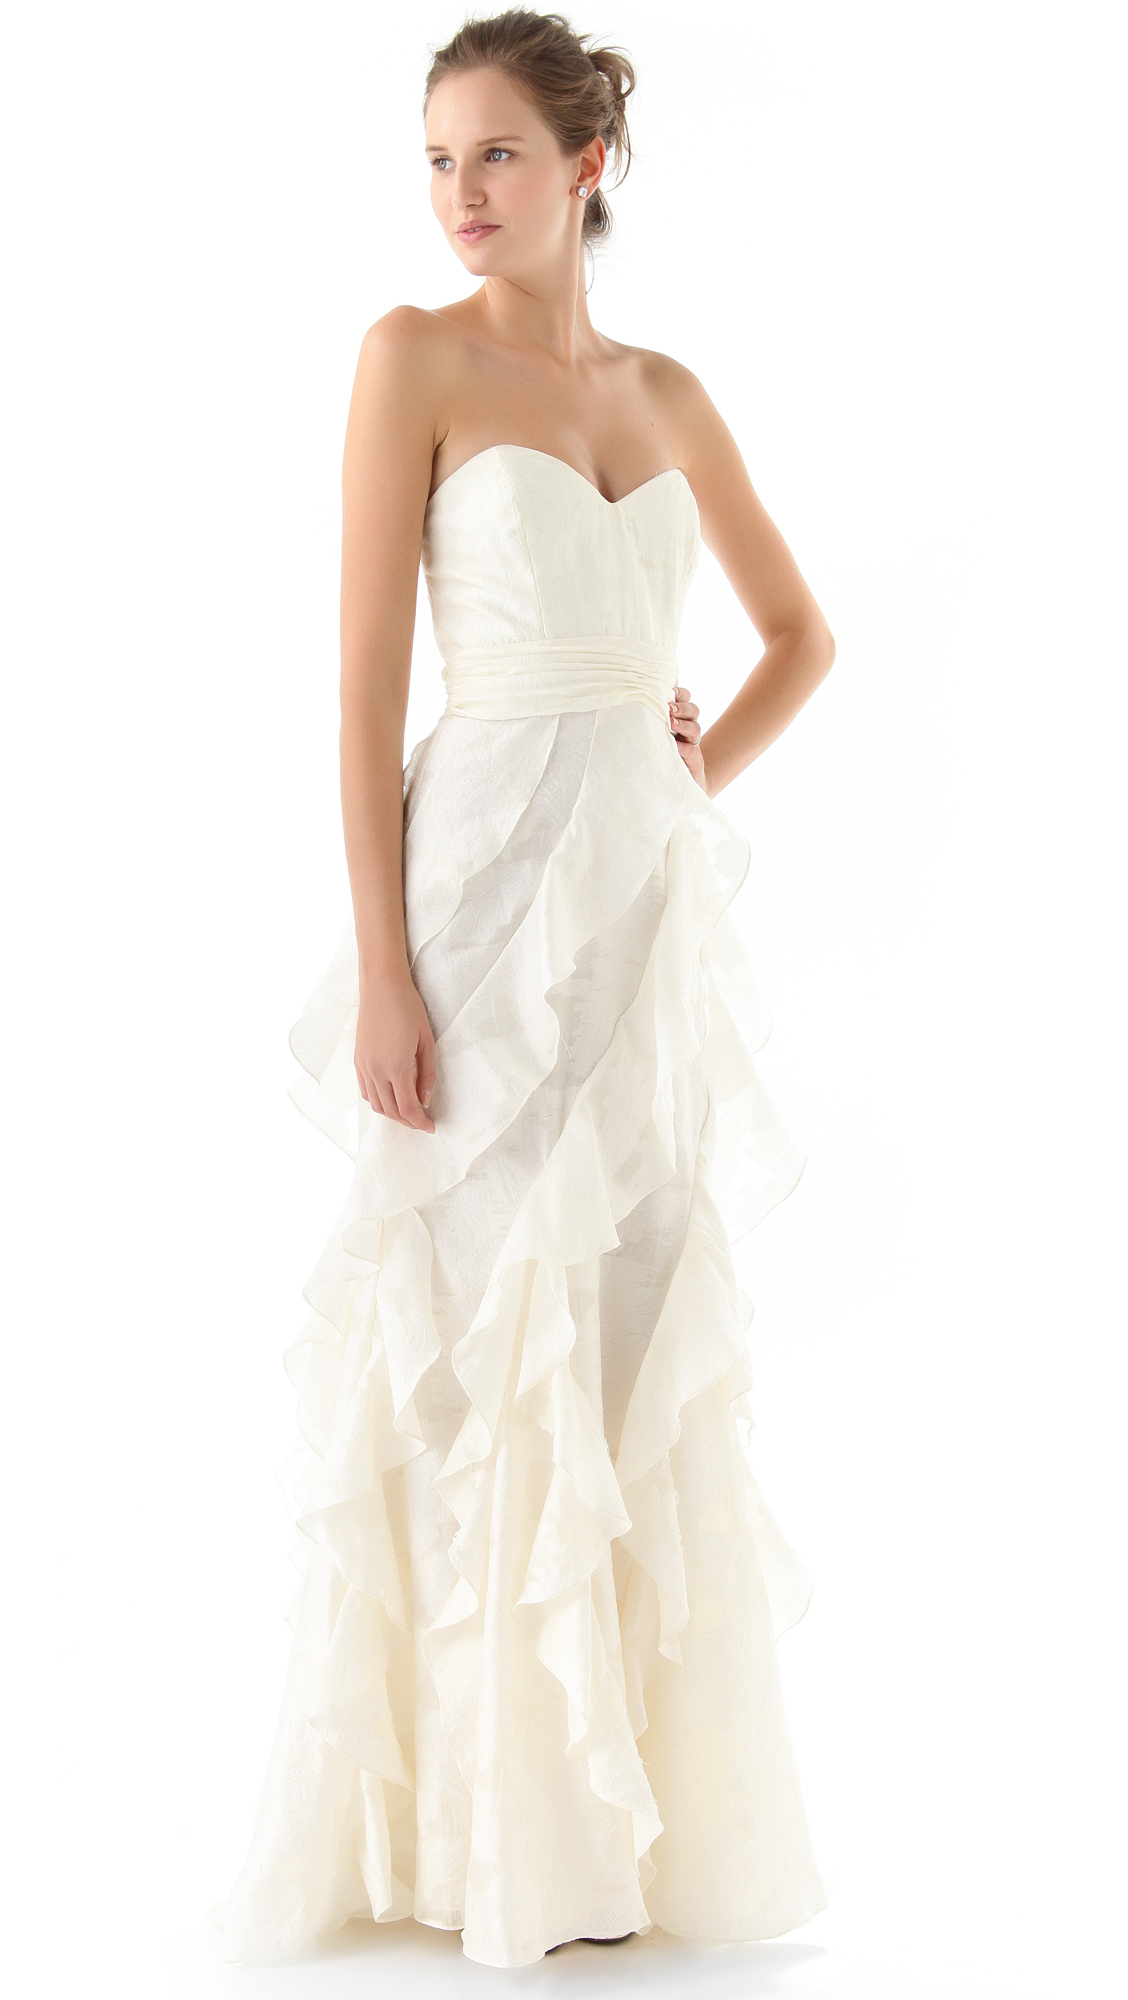 badgley-mischka-collection-ivory-strapless-gown-with-ruffle-product-2-13395862-326190971